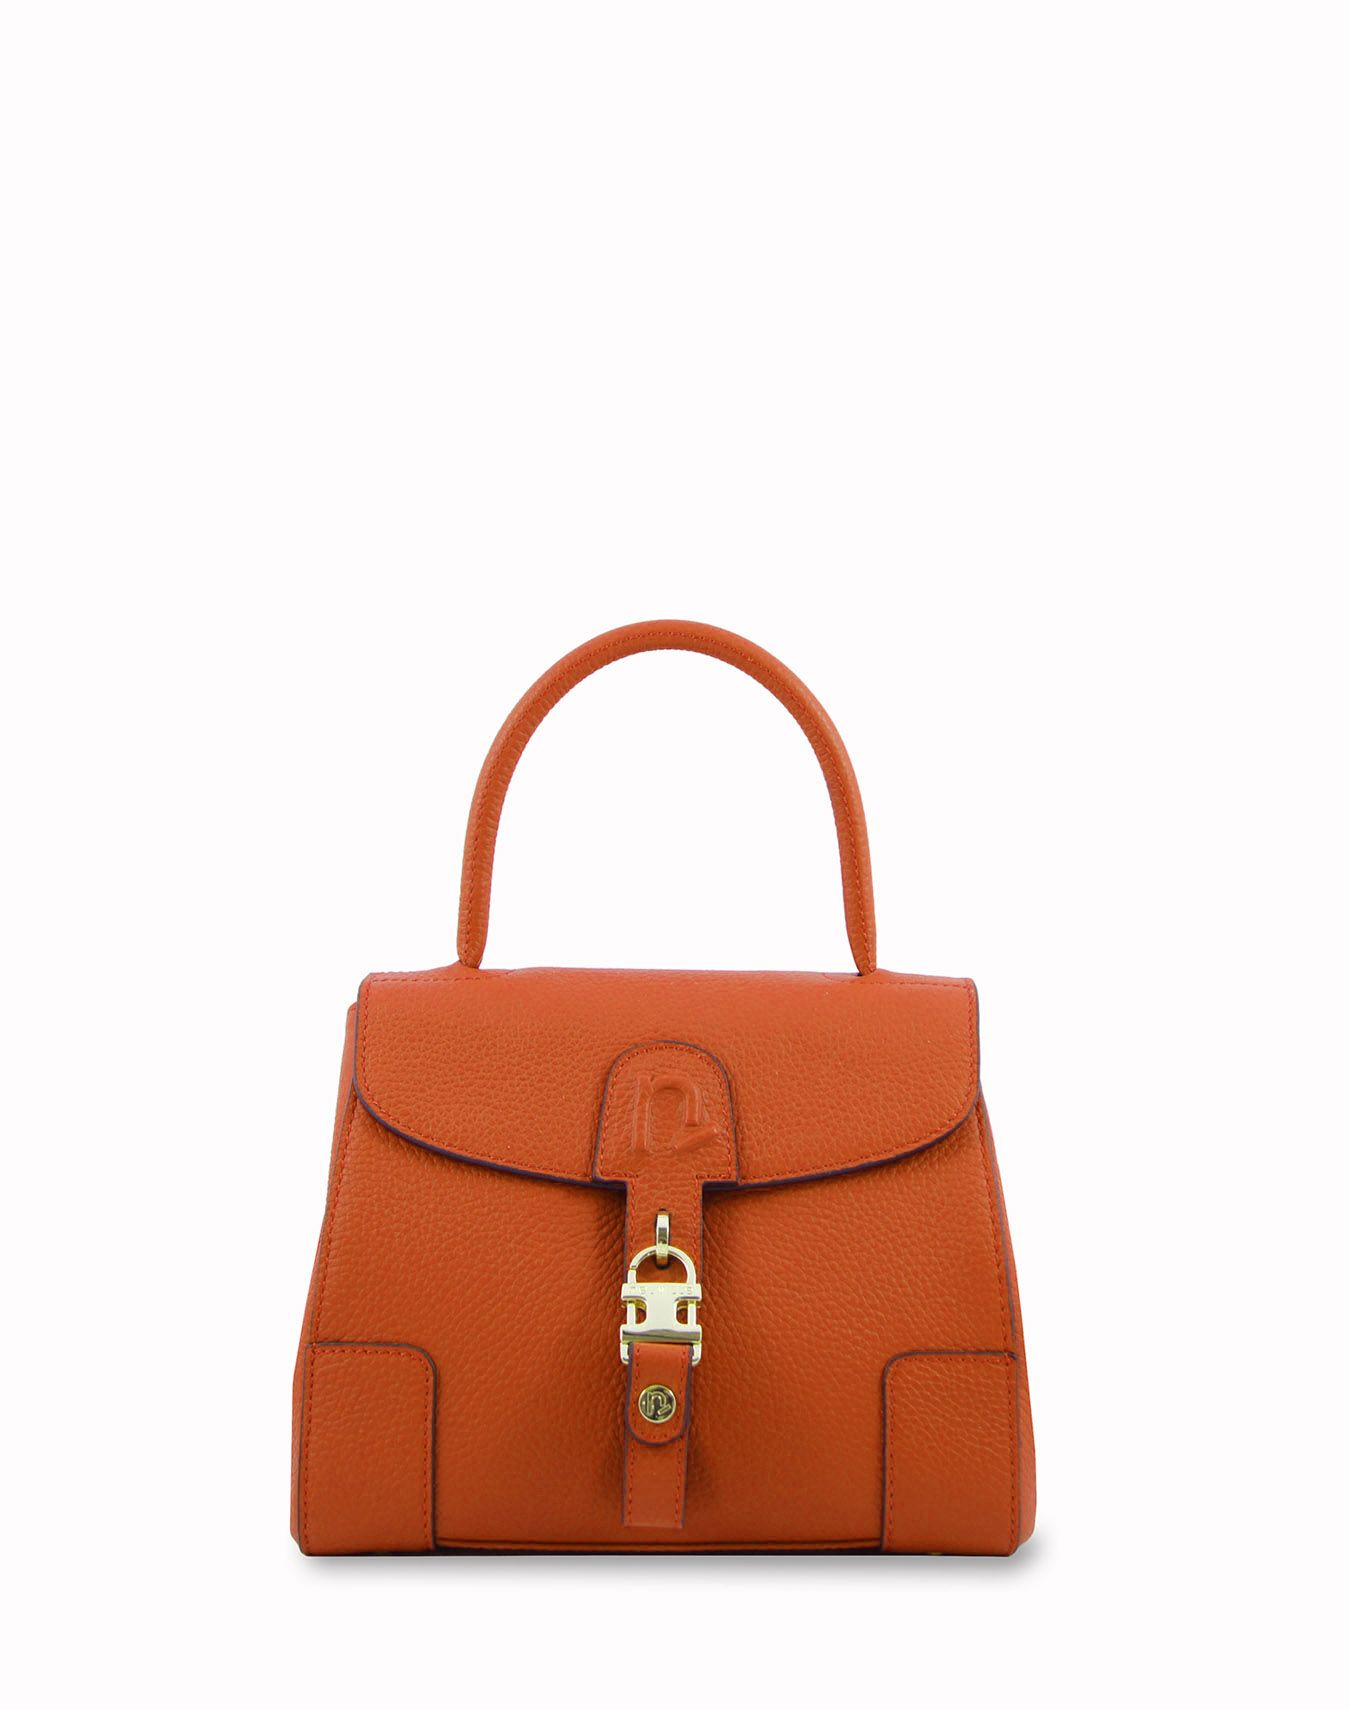 a15f9df039 Prélude (s) Orange sac à main Neuville | wishlist | Bags, Day bag ...